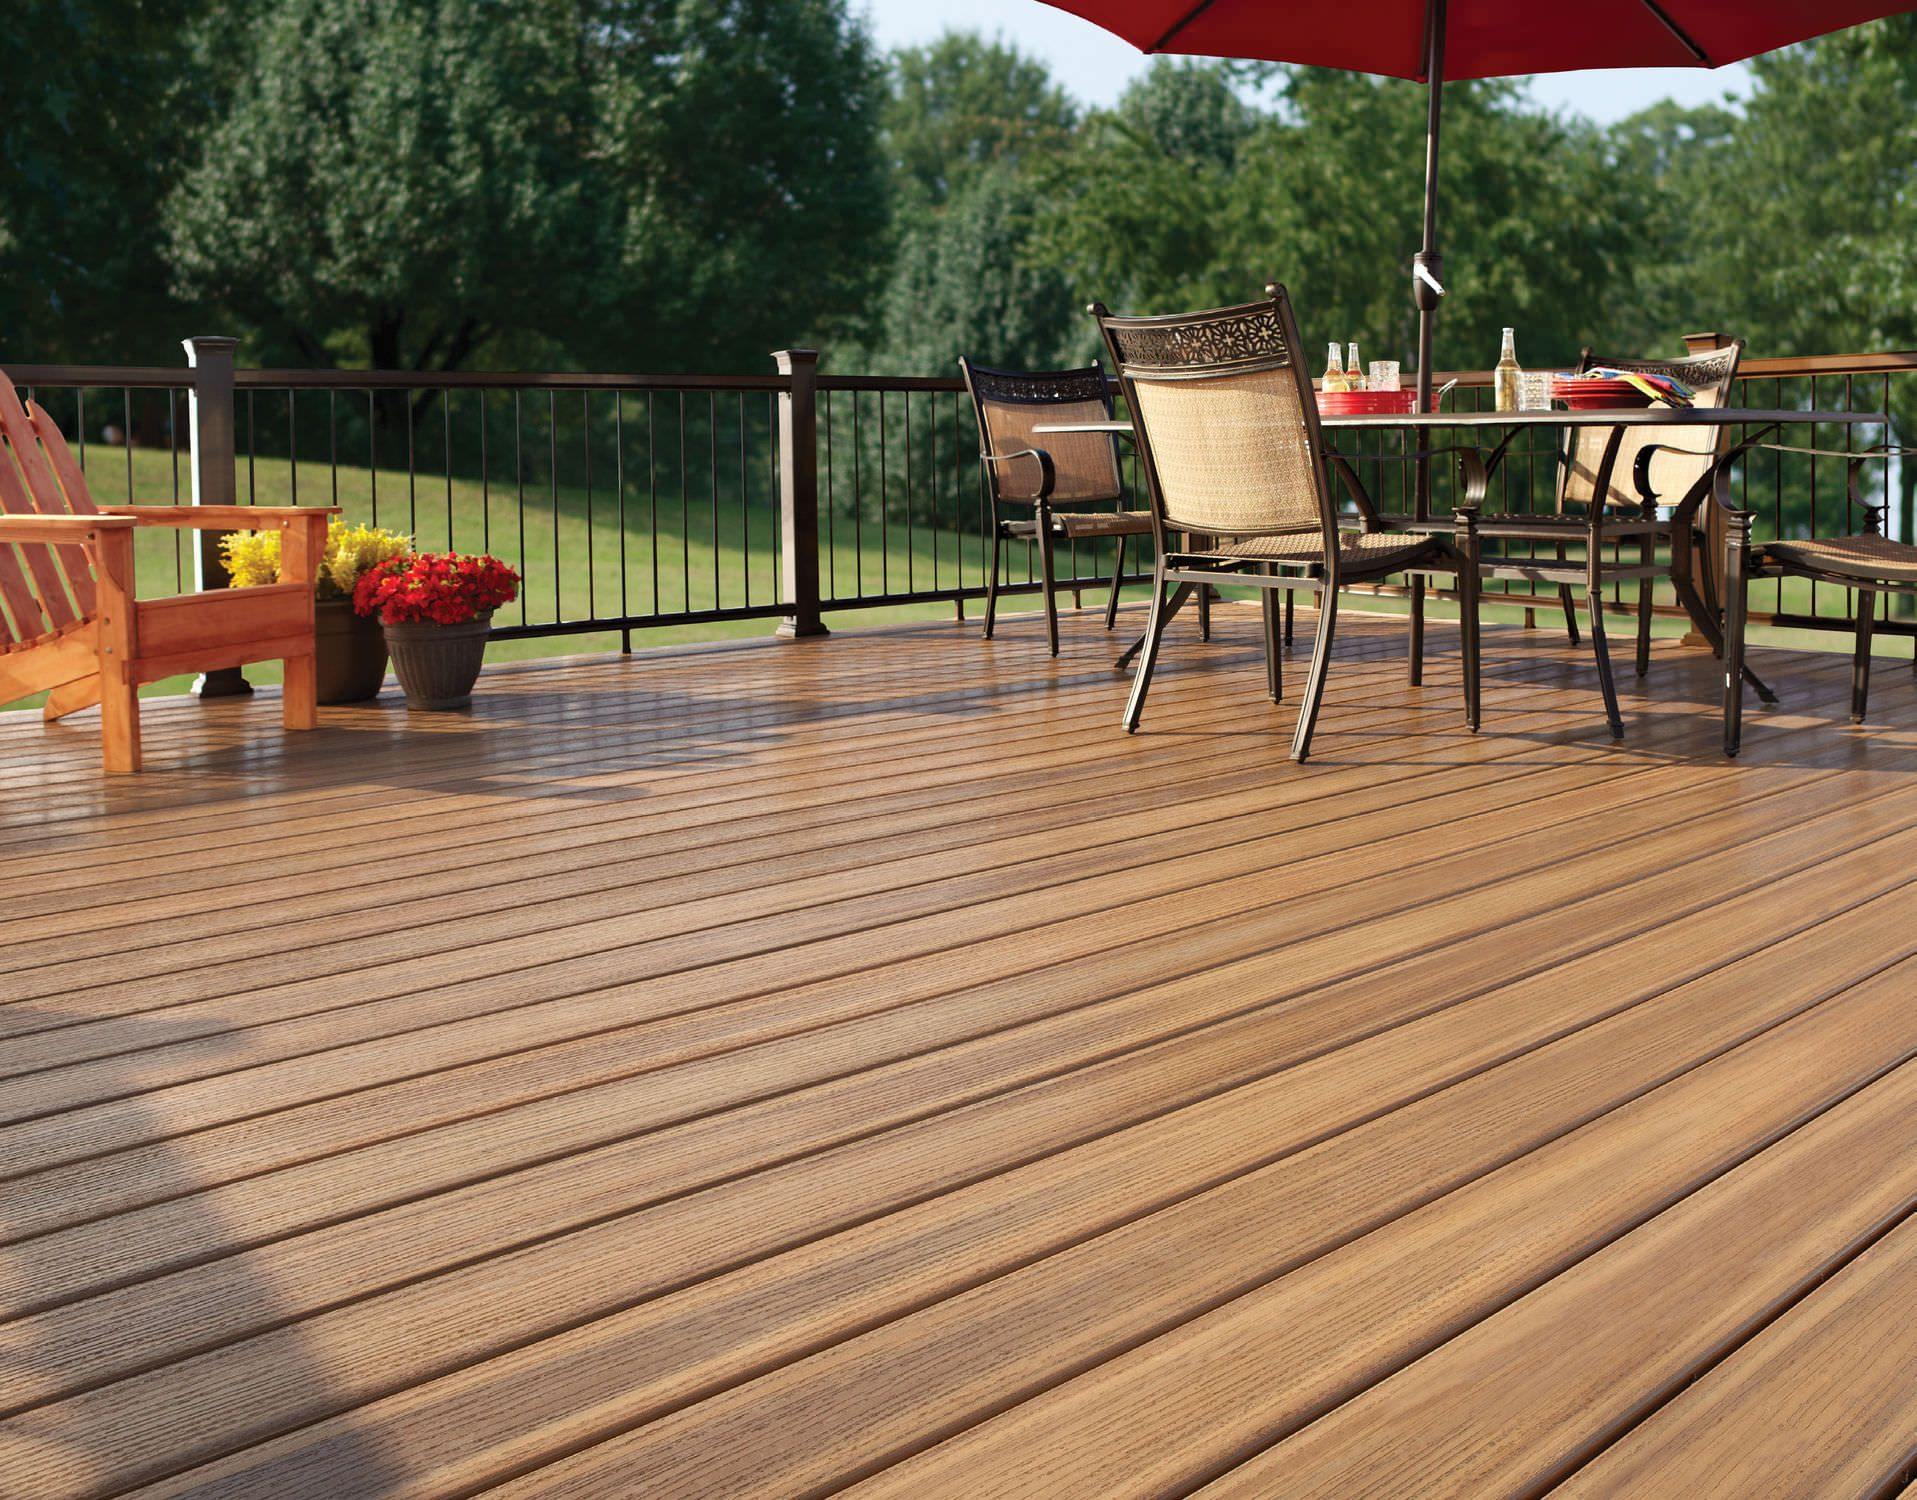 Cost Of Composite Decking Vs Wood Decking Wooden Balustrade Panels For Decks Pvc And Wood Deck Wood Type Building A Deck Deck Diy Deck